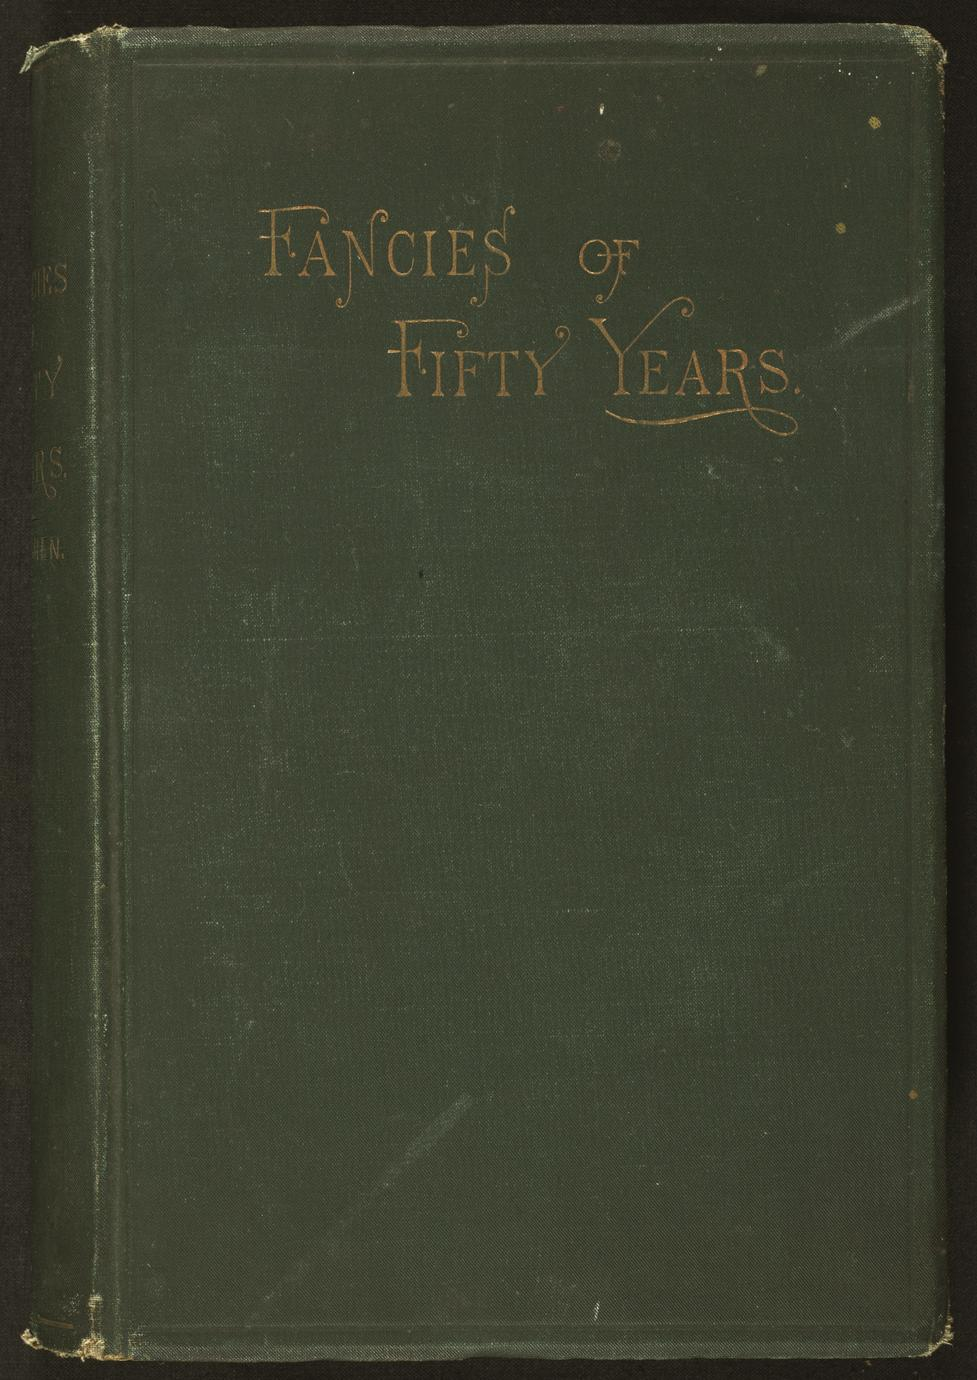 Fancies of fifty years : prose and verse (1 of 3)